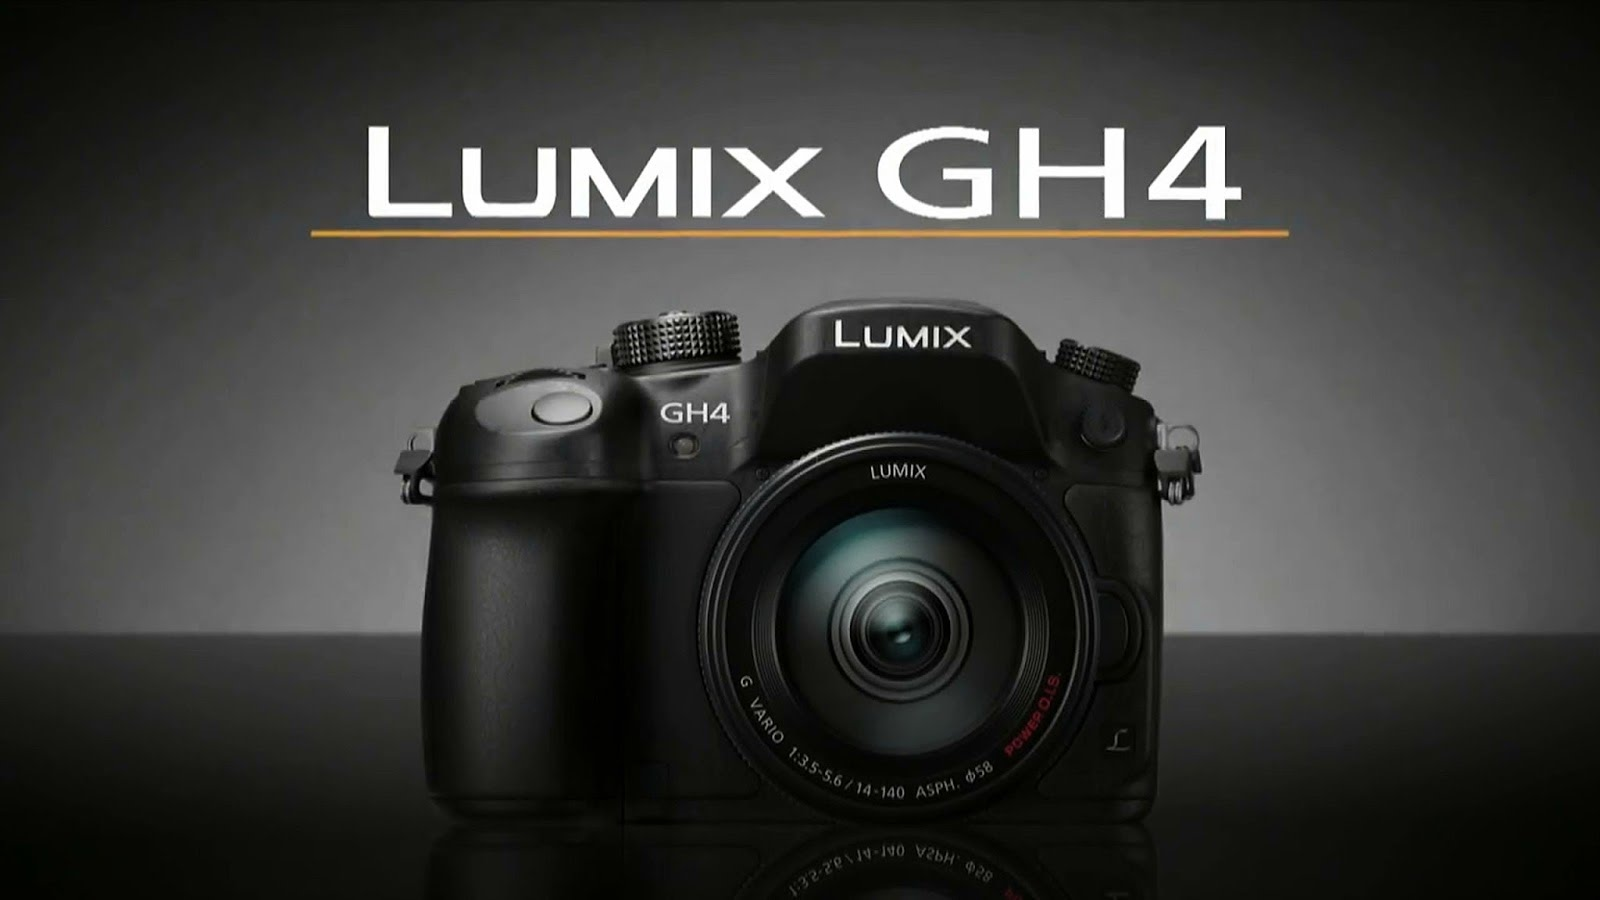 Panasonic Rolls Out Firmware 2 6 for its DMC-GH4 Camera - Download Now